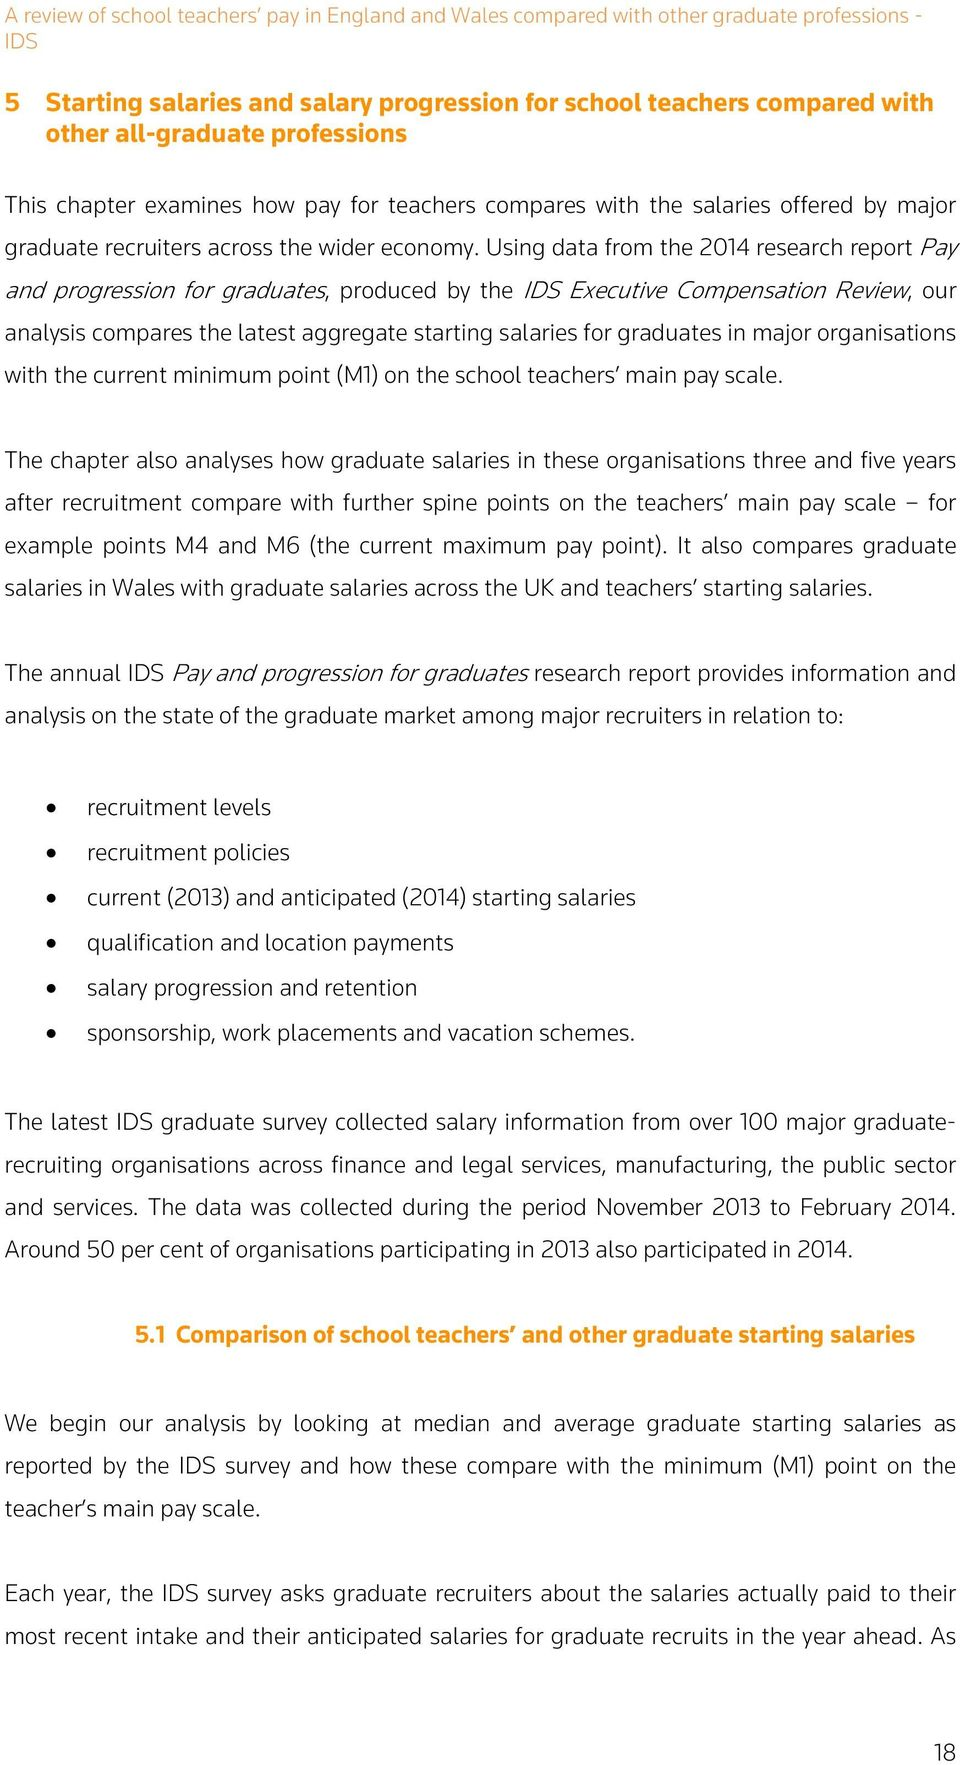 Using data from the 2014 research report Pay and progression for graduates, produced by the Executive Compensation Review, our analysis compares the latest aggregate starting salaries for graduates